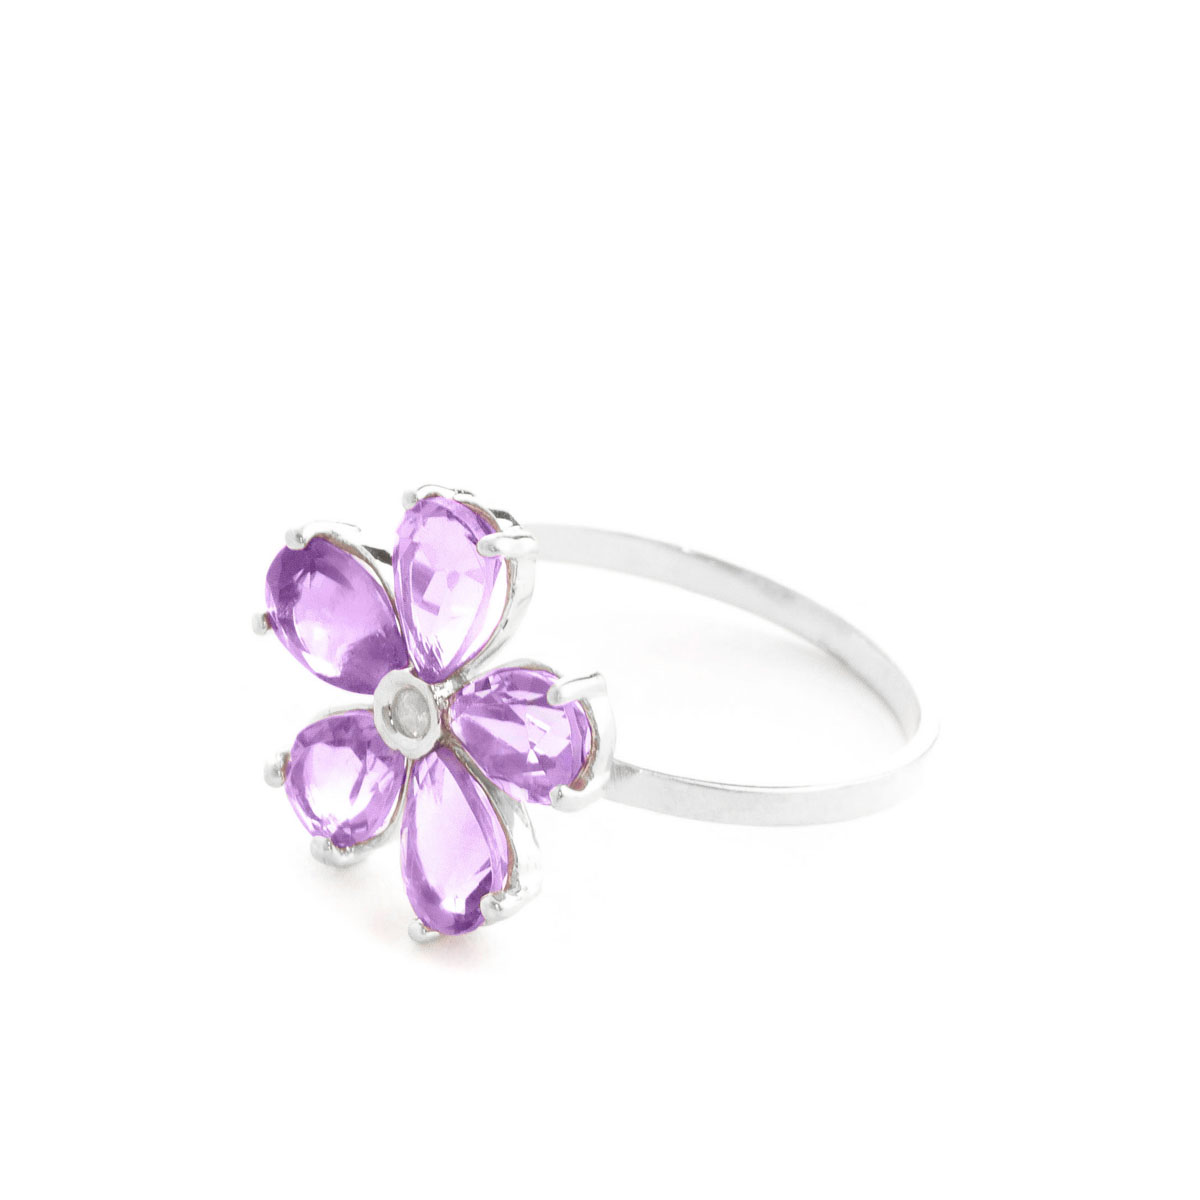 Amethyst & Diamond Five Petal Ring in 9ct White Gold